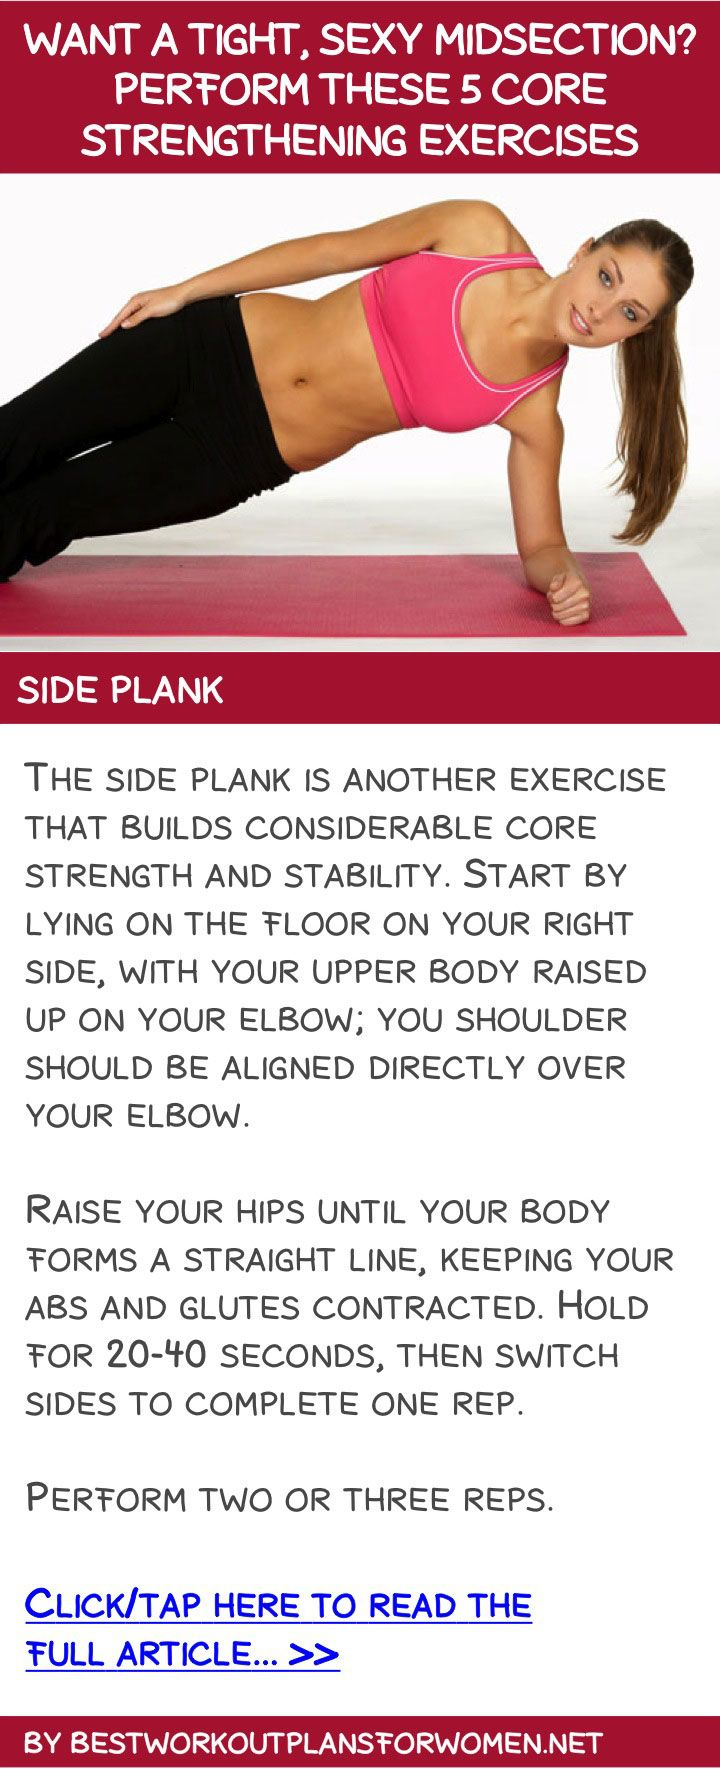 Want a tight, sexy midsection? Perform these 5 core strengthening exercises - Side plank ExperienceValentus.com/Janicej